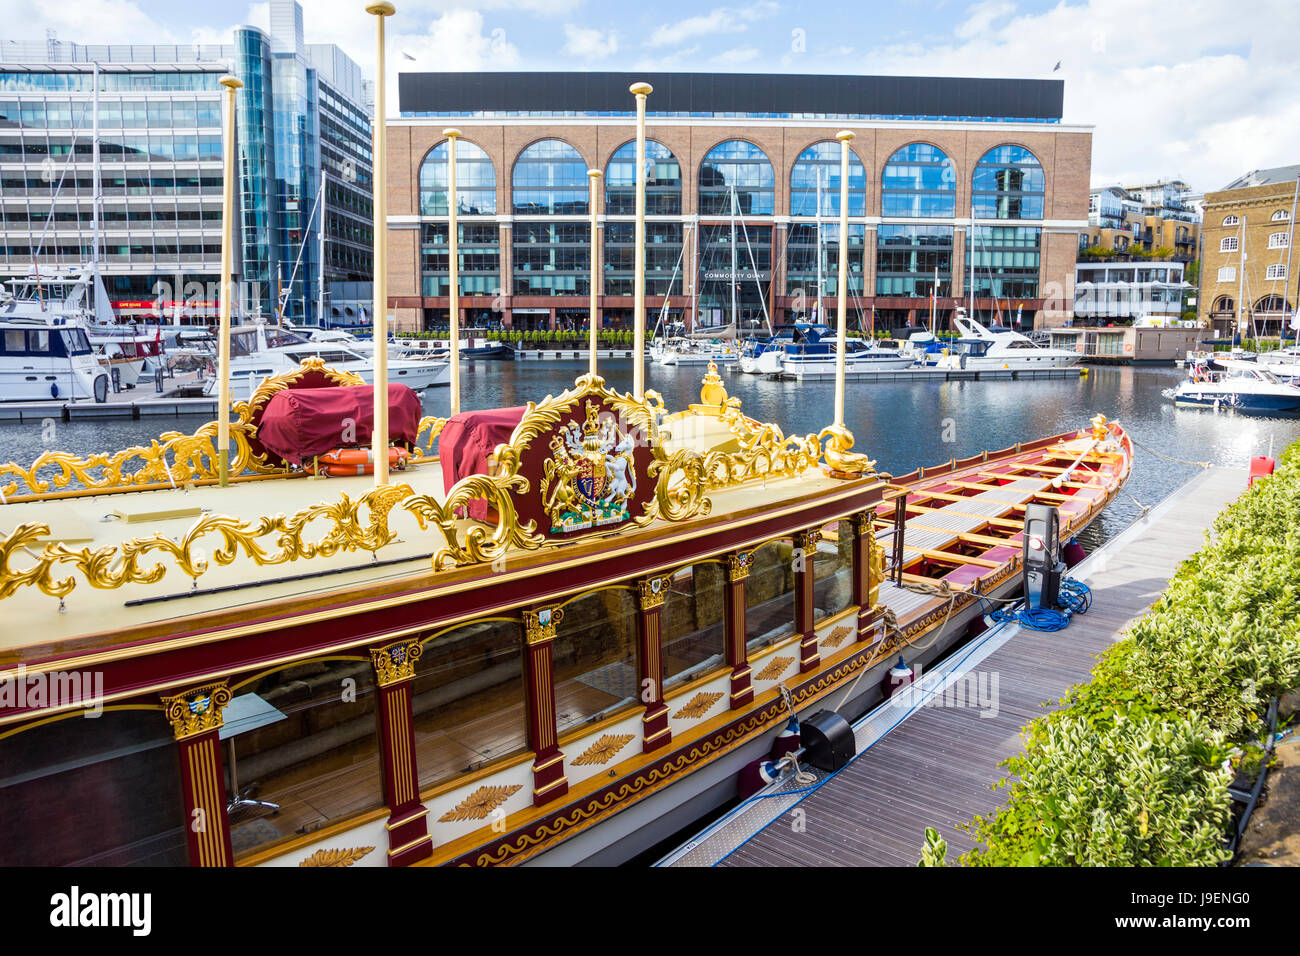 Gloriana Barge in St Katharine's Docks - royal barge commissioned as tribute to Queen Elizabeth II for her Diamond - Stock Image